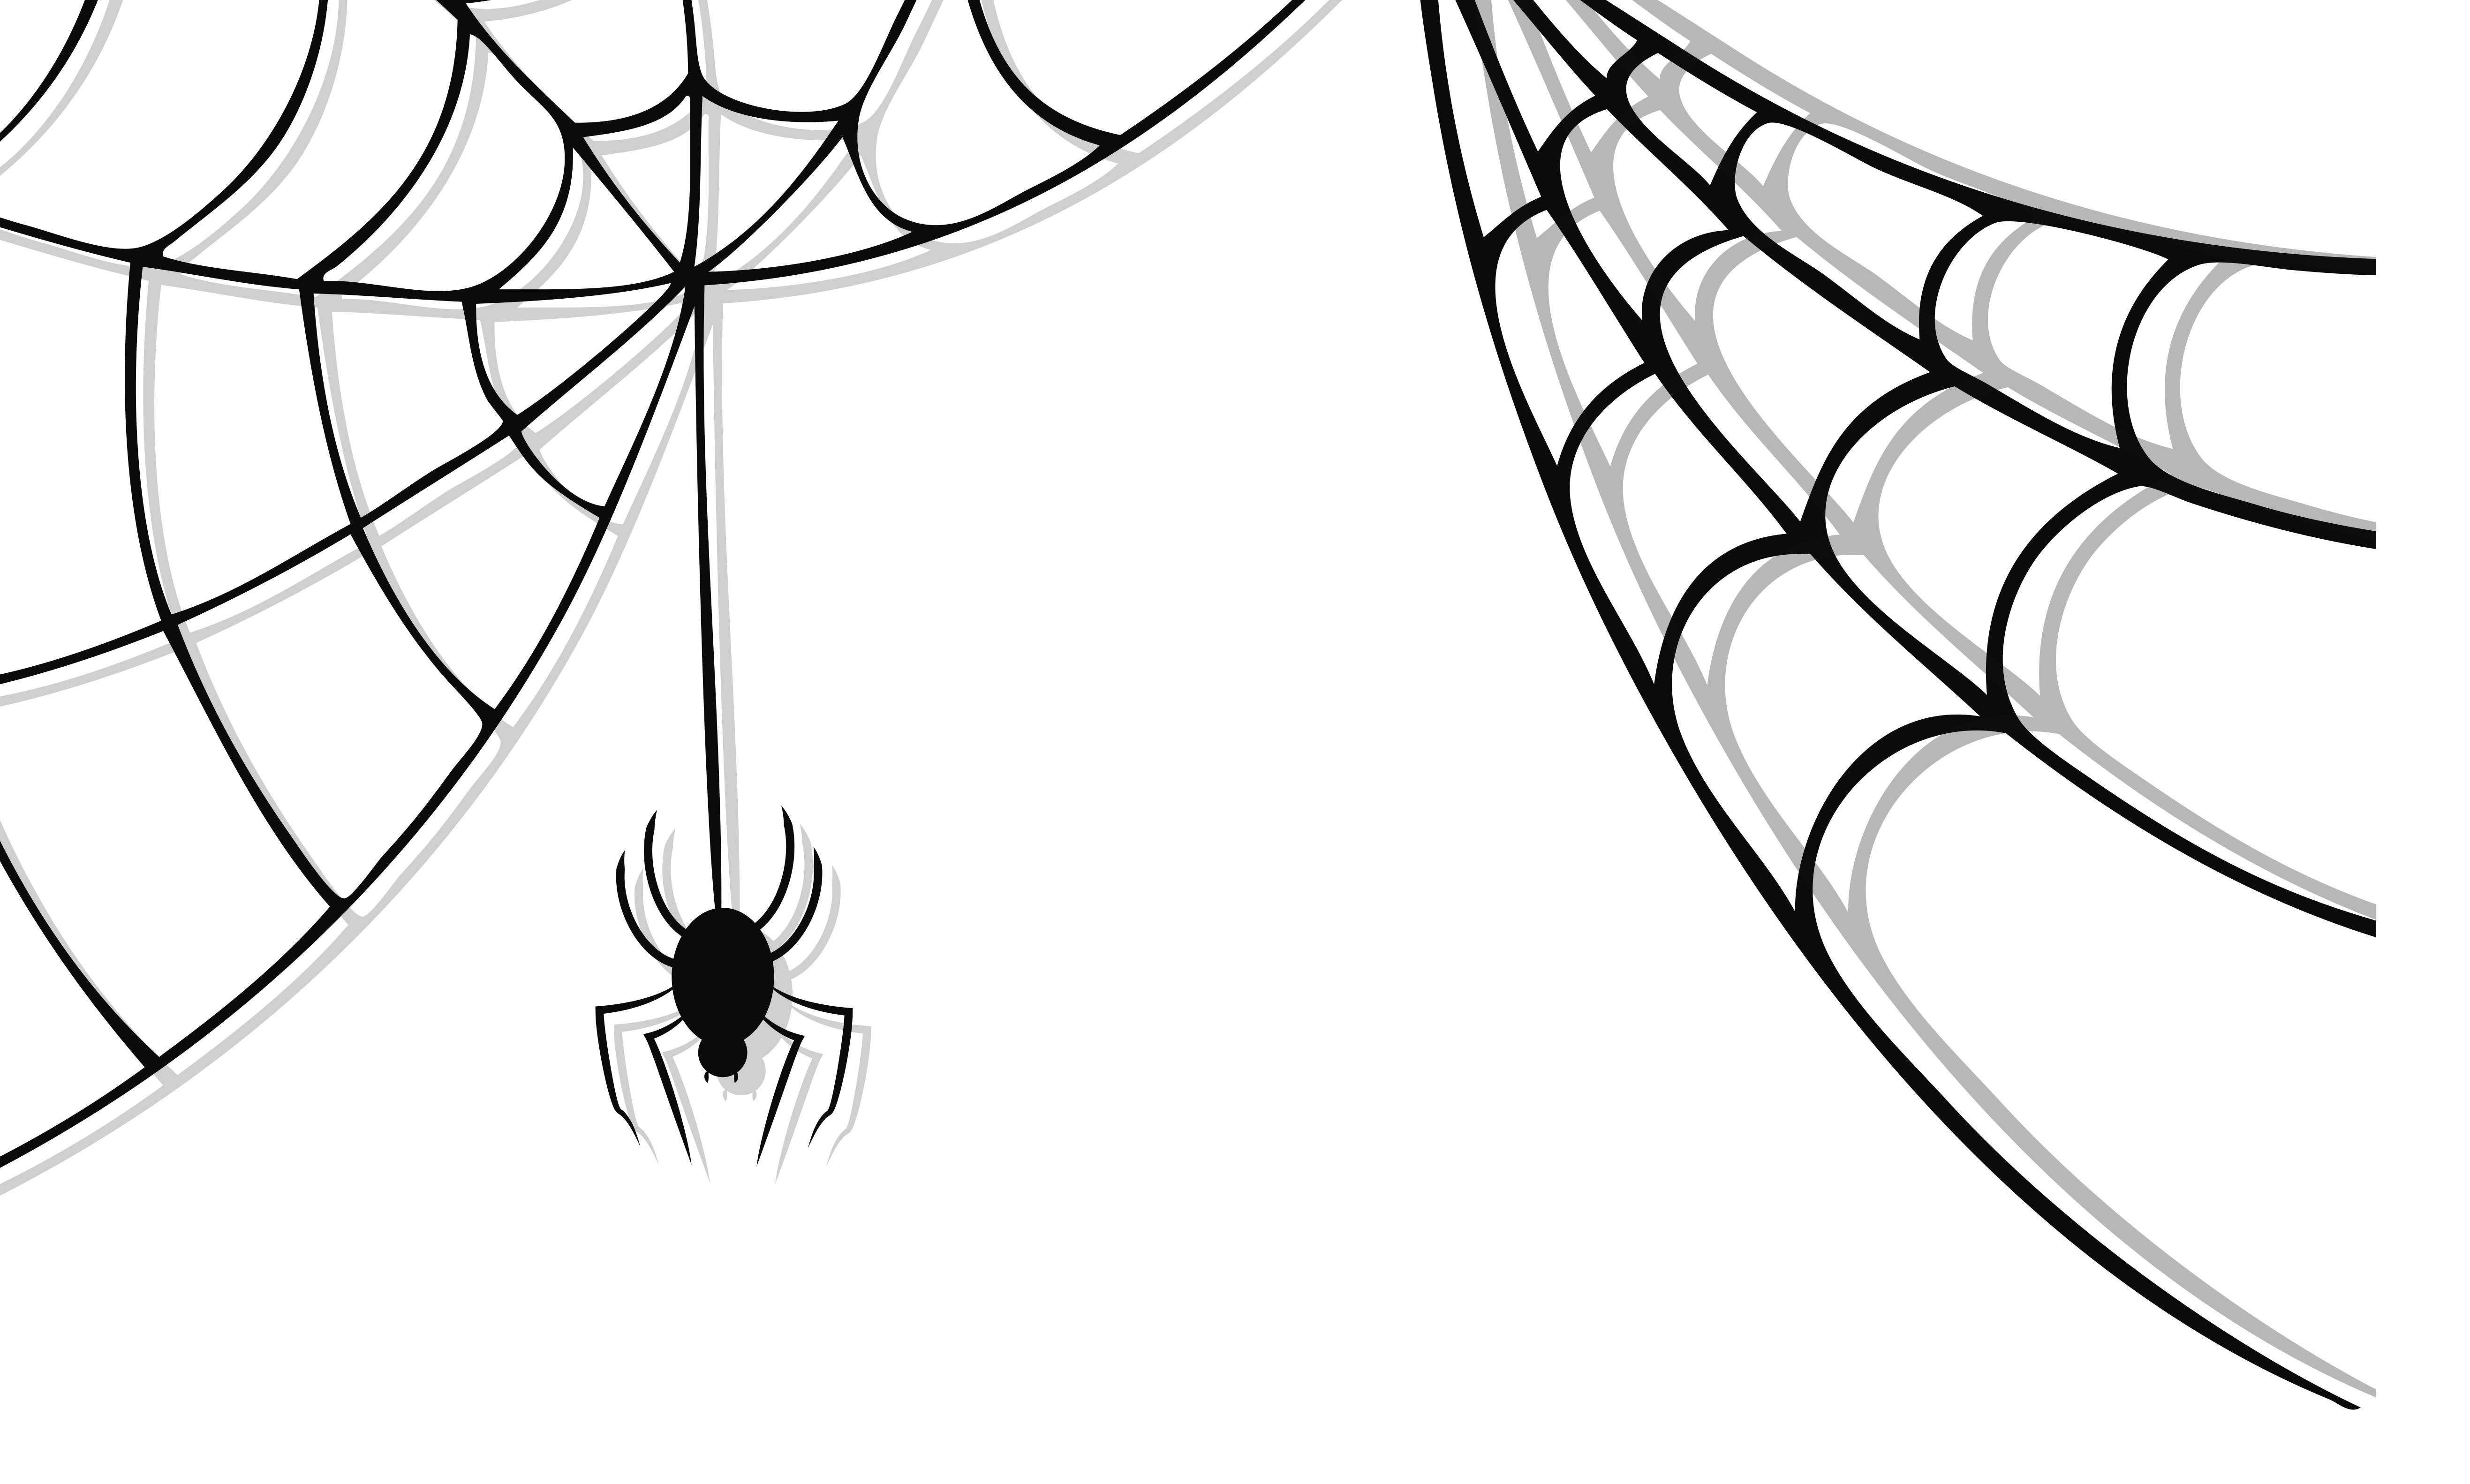 Free Spider Web Clipart 3 Pictures.